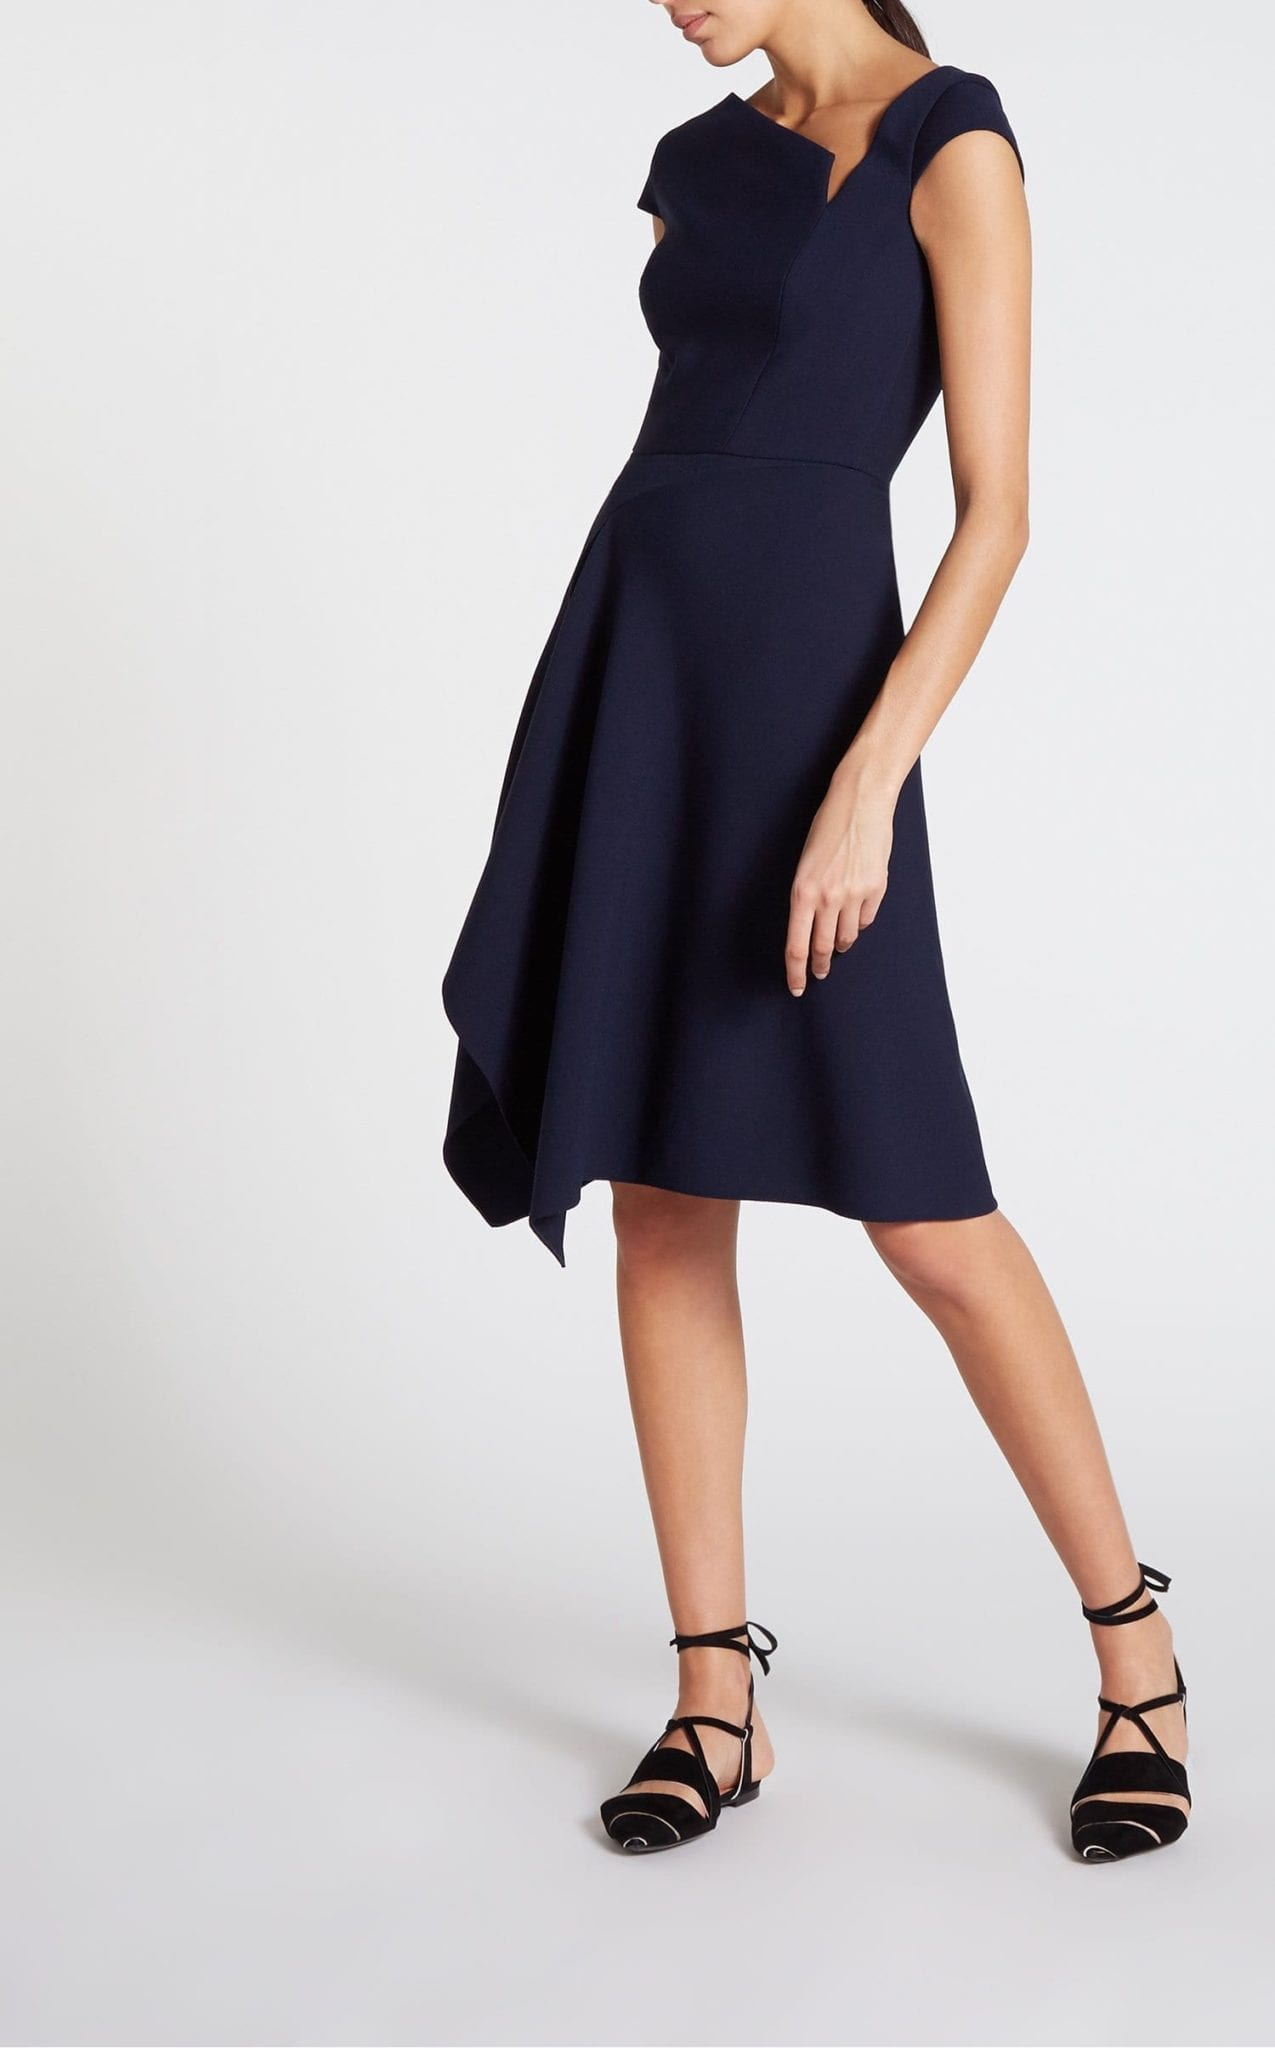 ROLAND MOURET Augustus Navy Dress